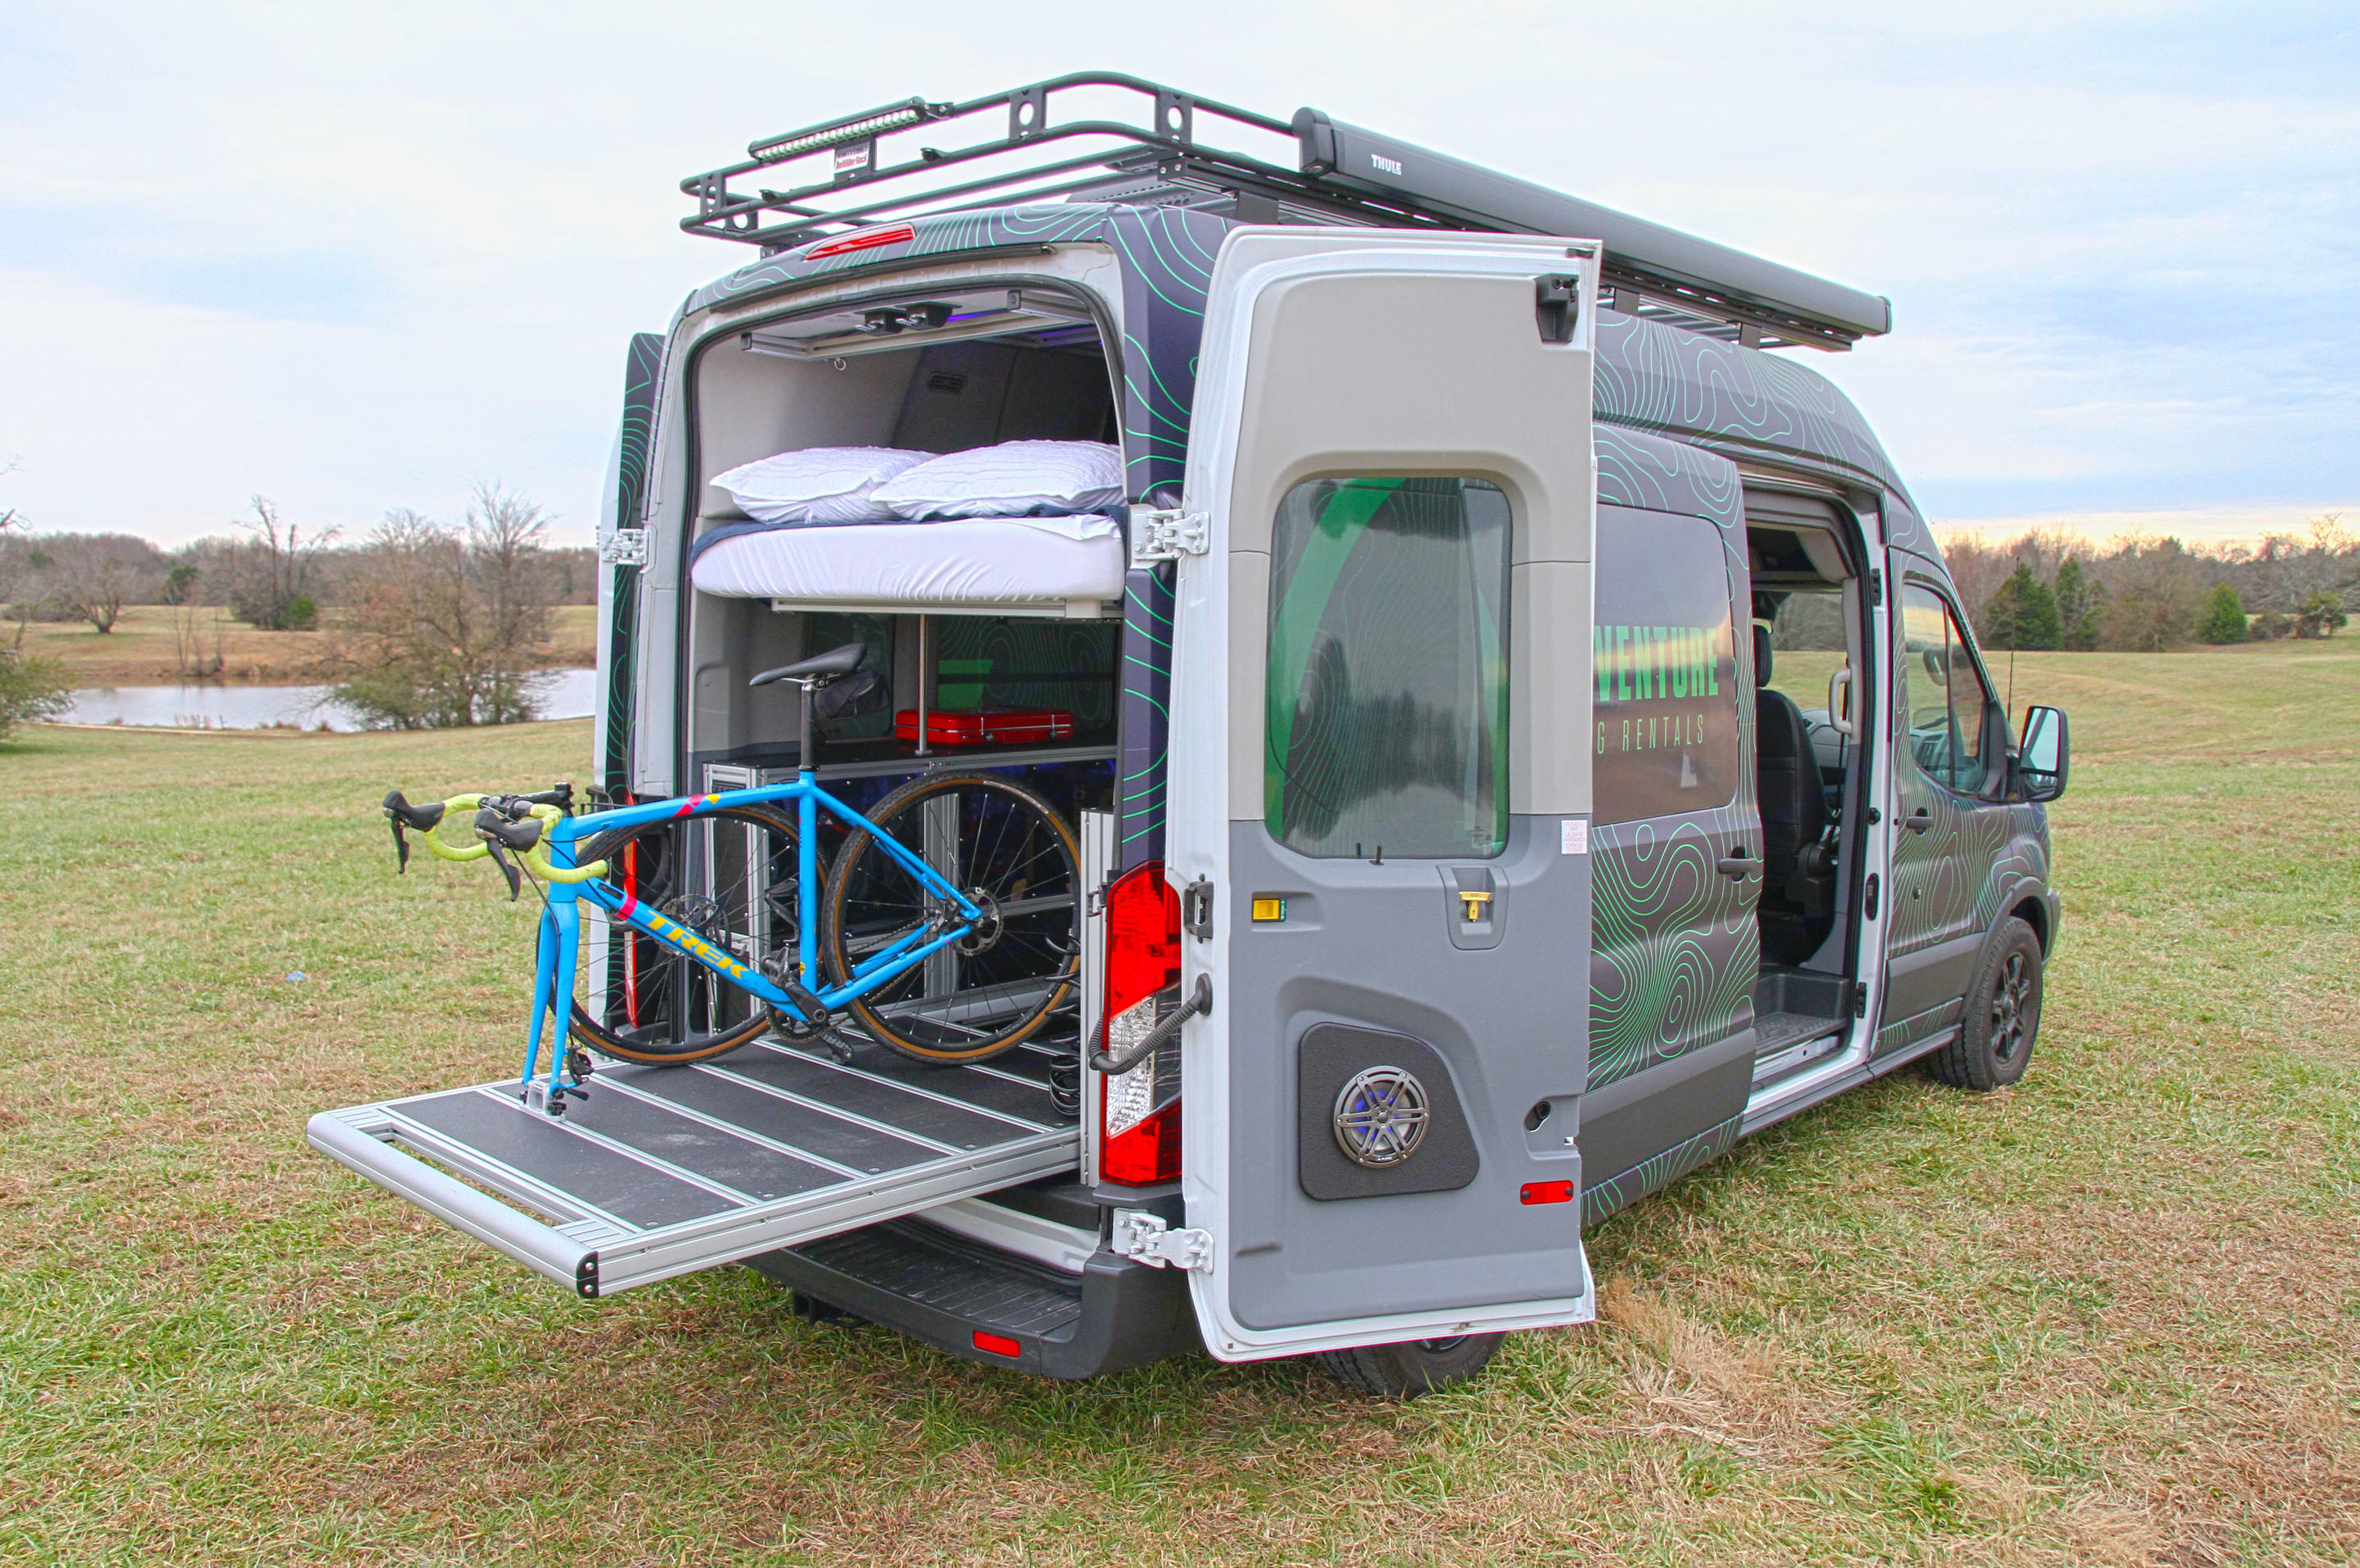 Large roof rack for gear. Extending gear slide for easy packing and accessing. That slide can also be used as a bed. Telescoping queen bed goes up and down depending on whether you need more sleep space or gear space. . Ford Transit Custom 2017